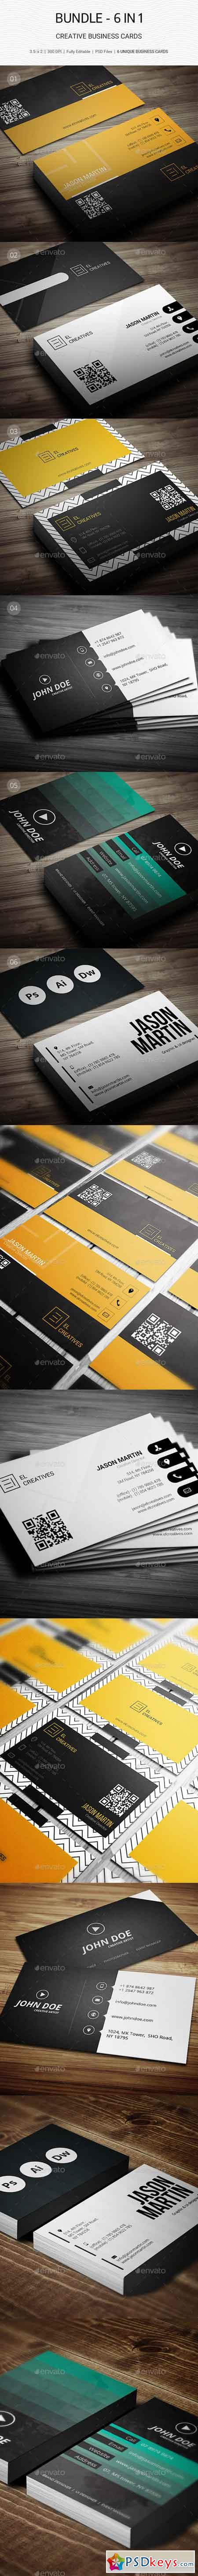 Bundle - Pro Business Cards - B43 20568241